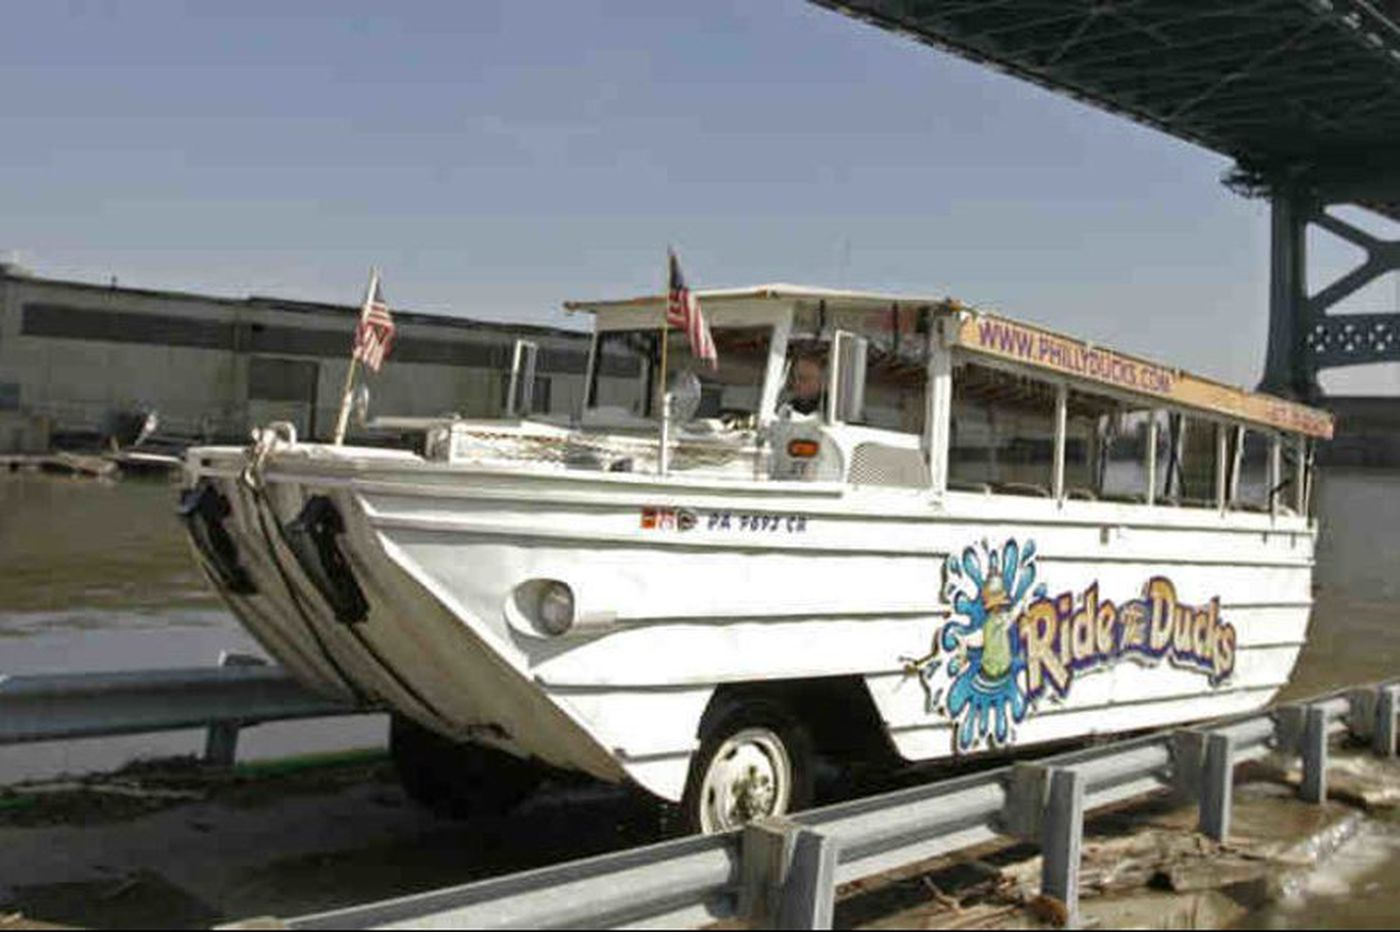 The fatal history of Philly's duck boats